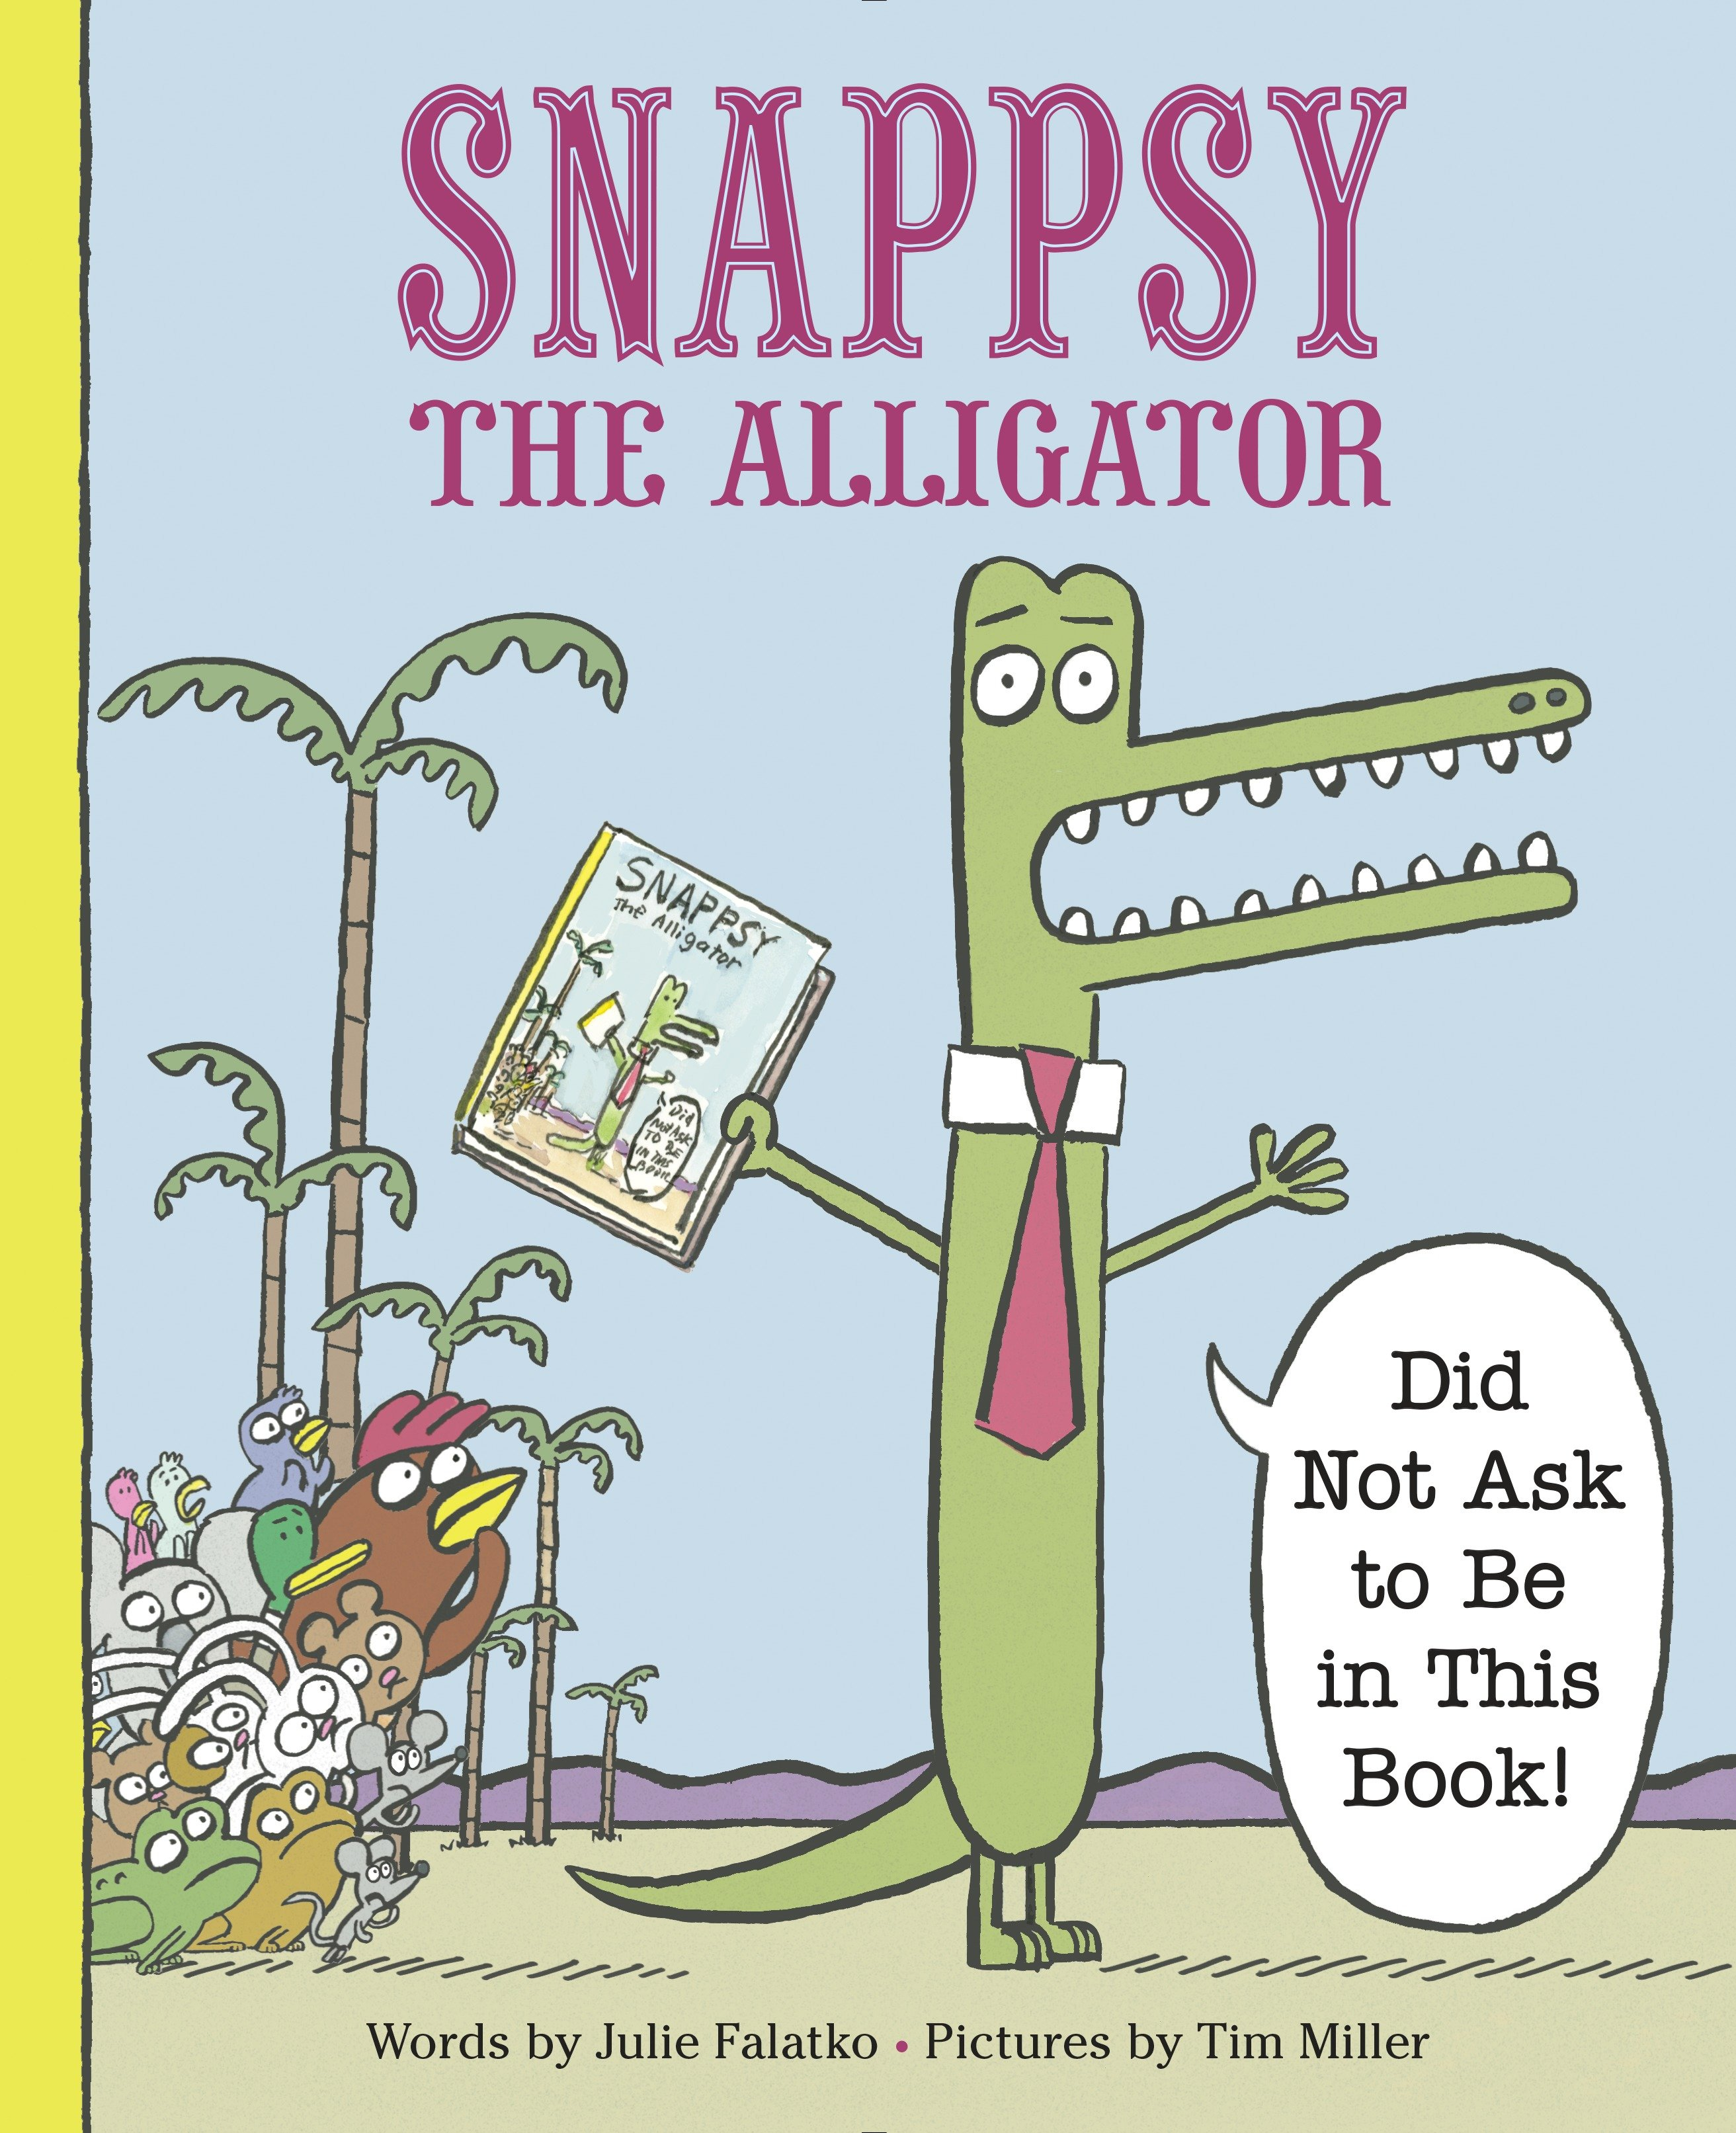 Snappsy the alligator (did not ask to be in this book!) cover image